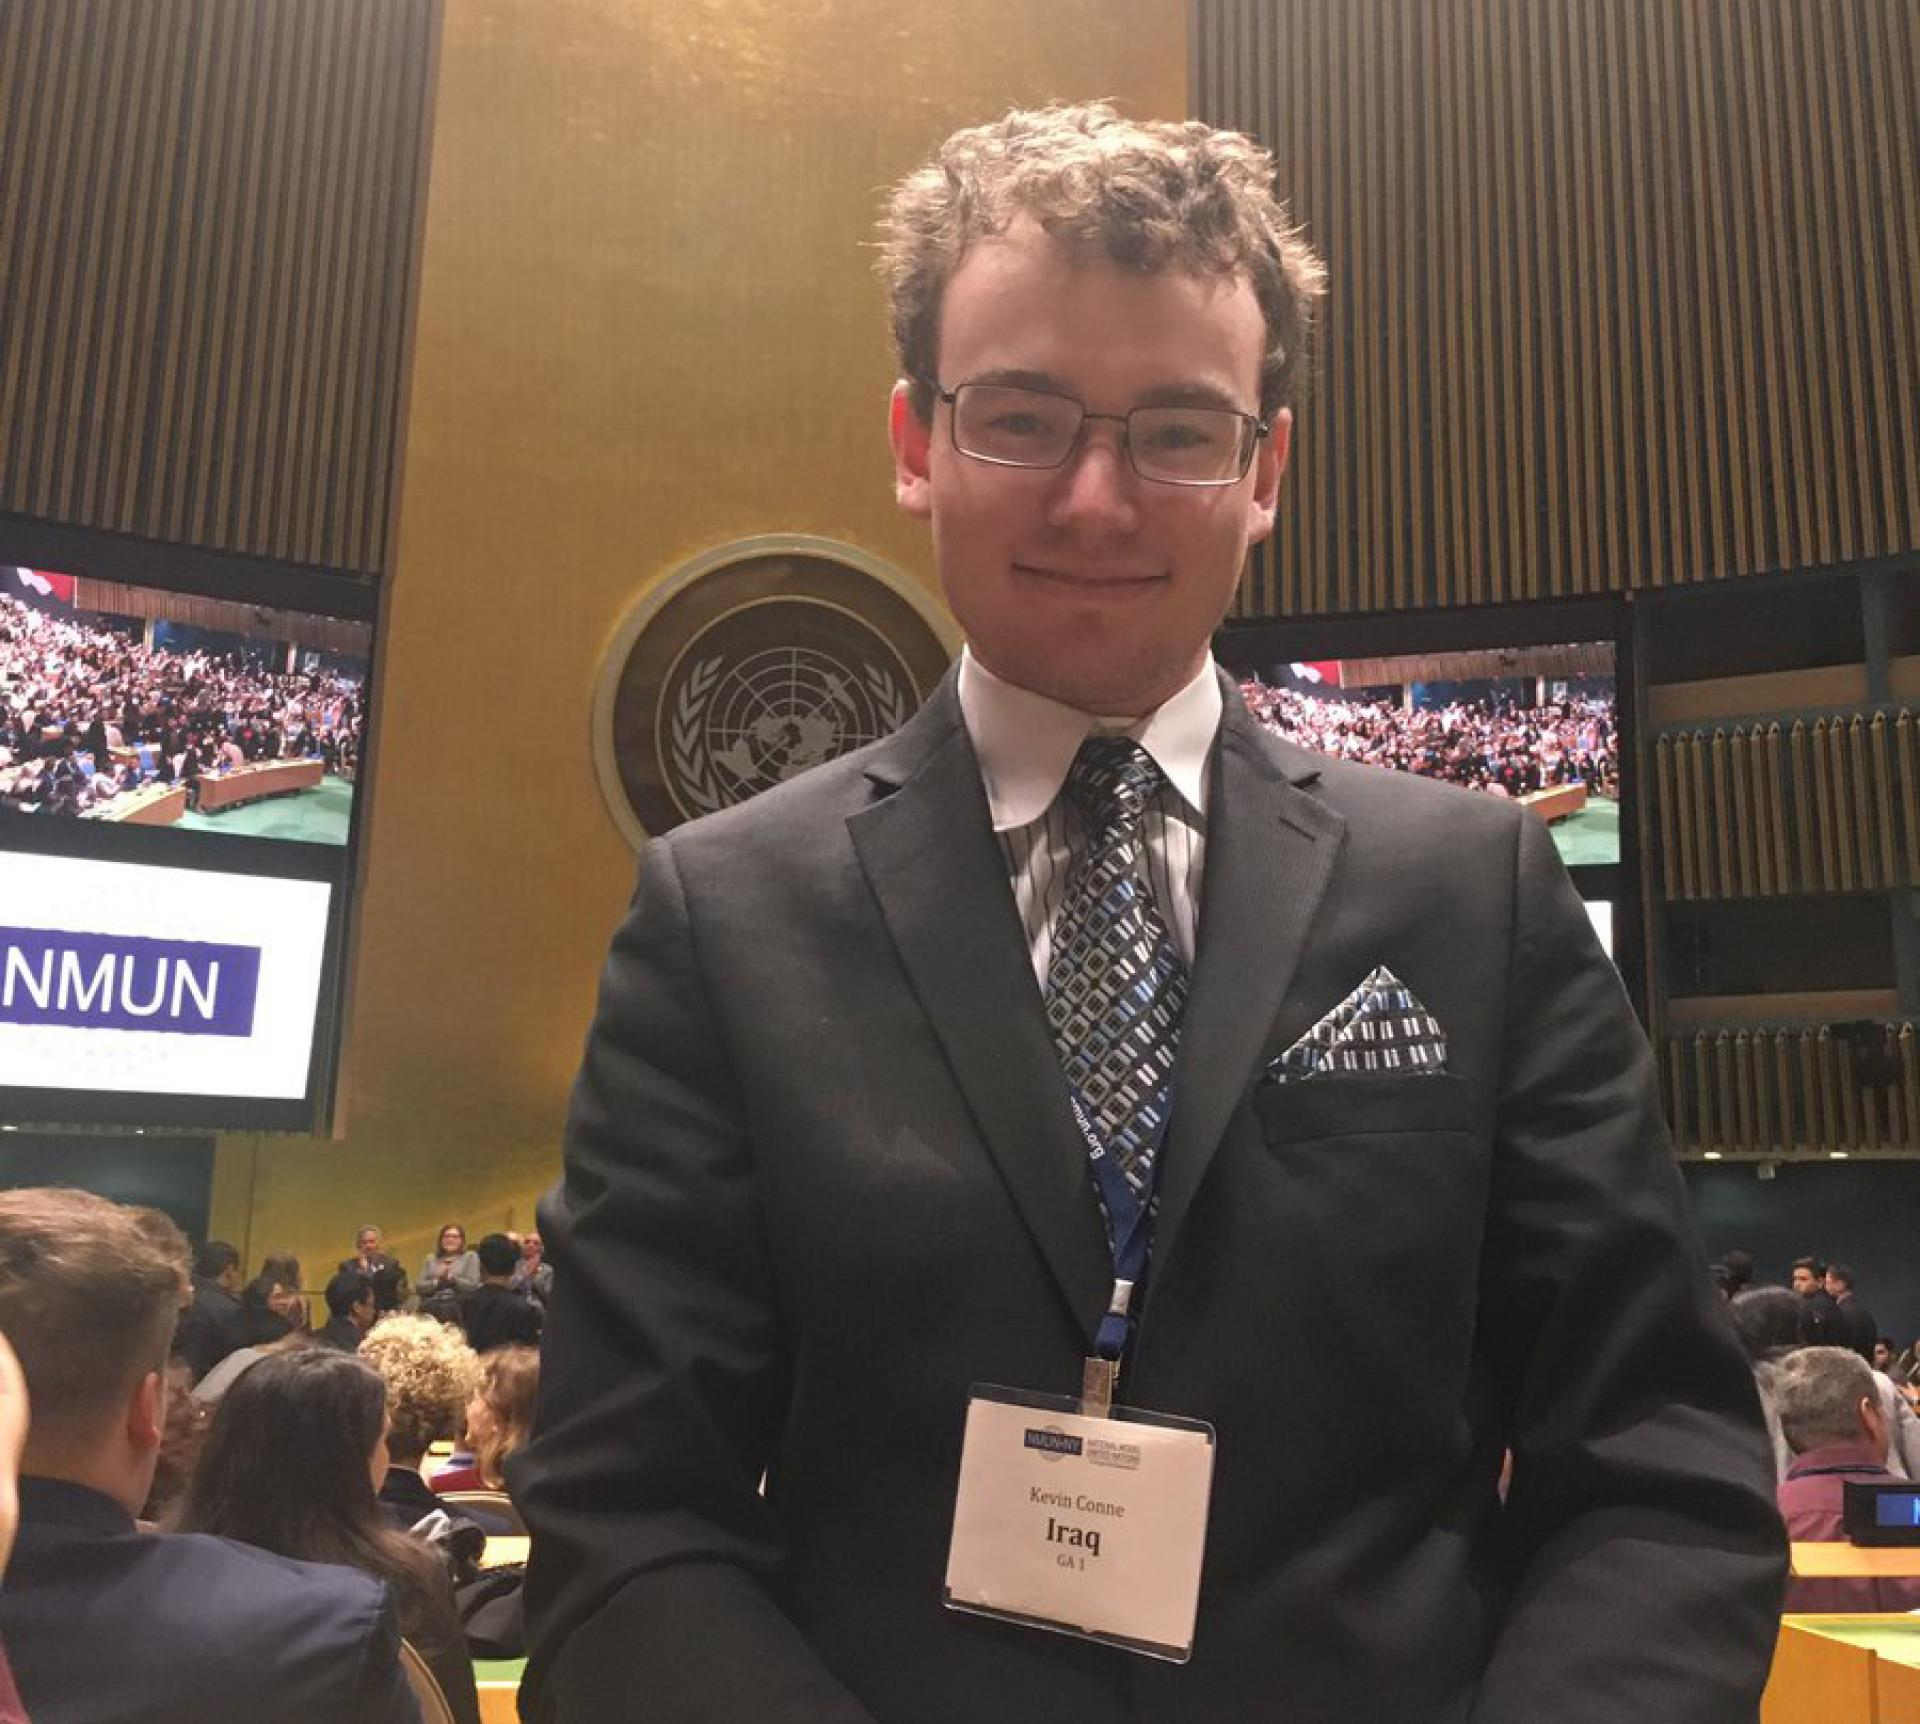 North Central College student Kevin Conne at the national model United Nations conference.